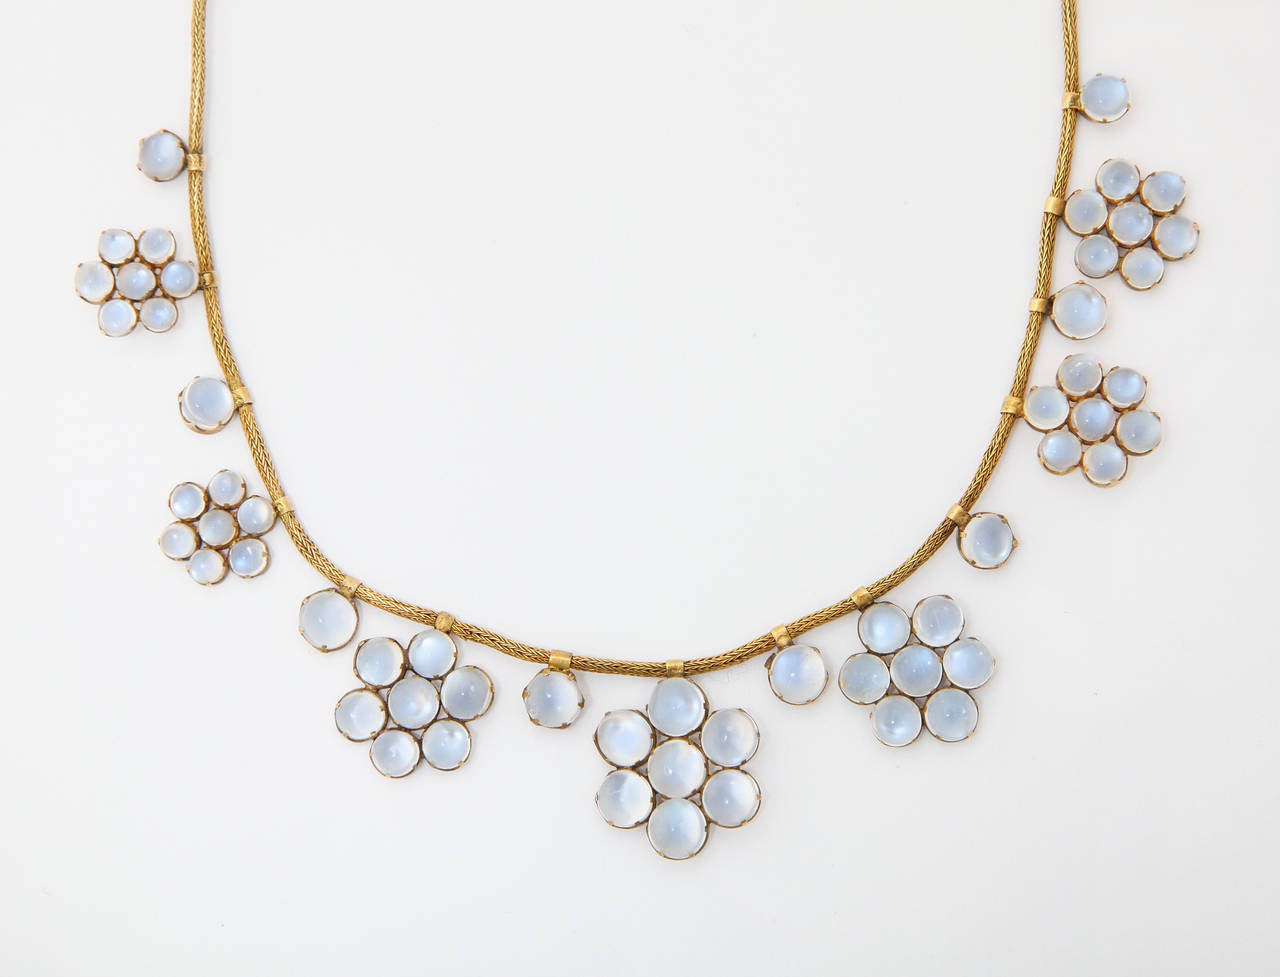 Antique Moonstone Gold Necklace 3